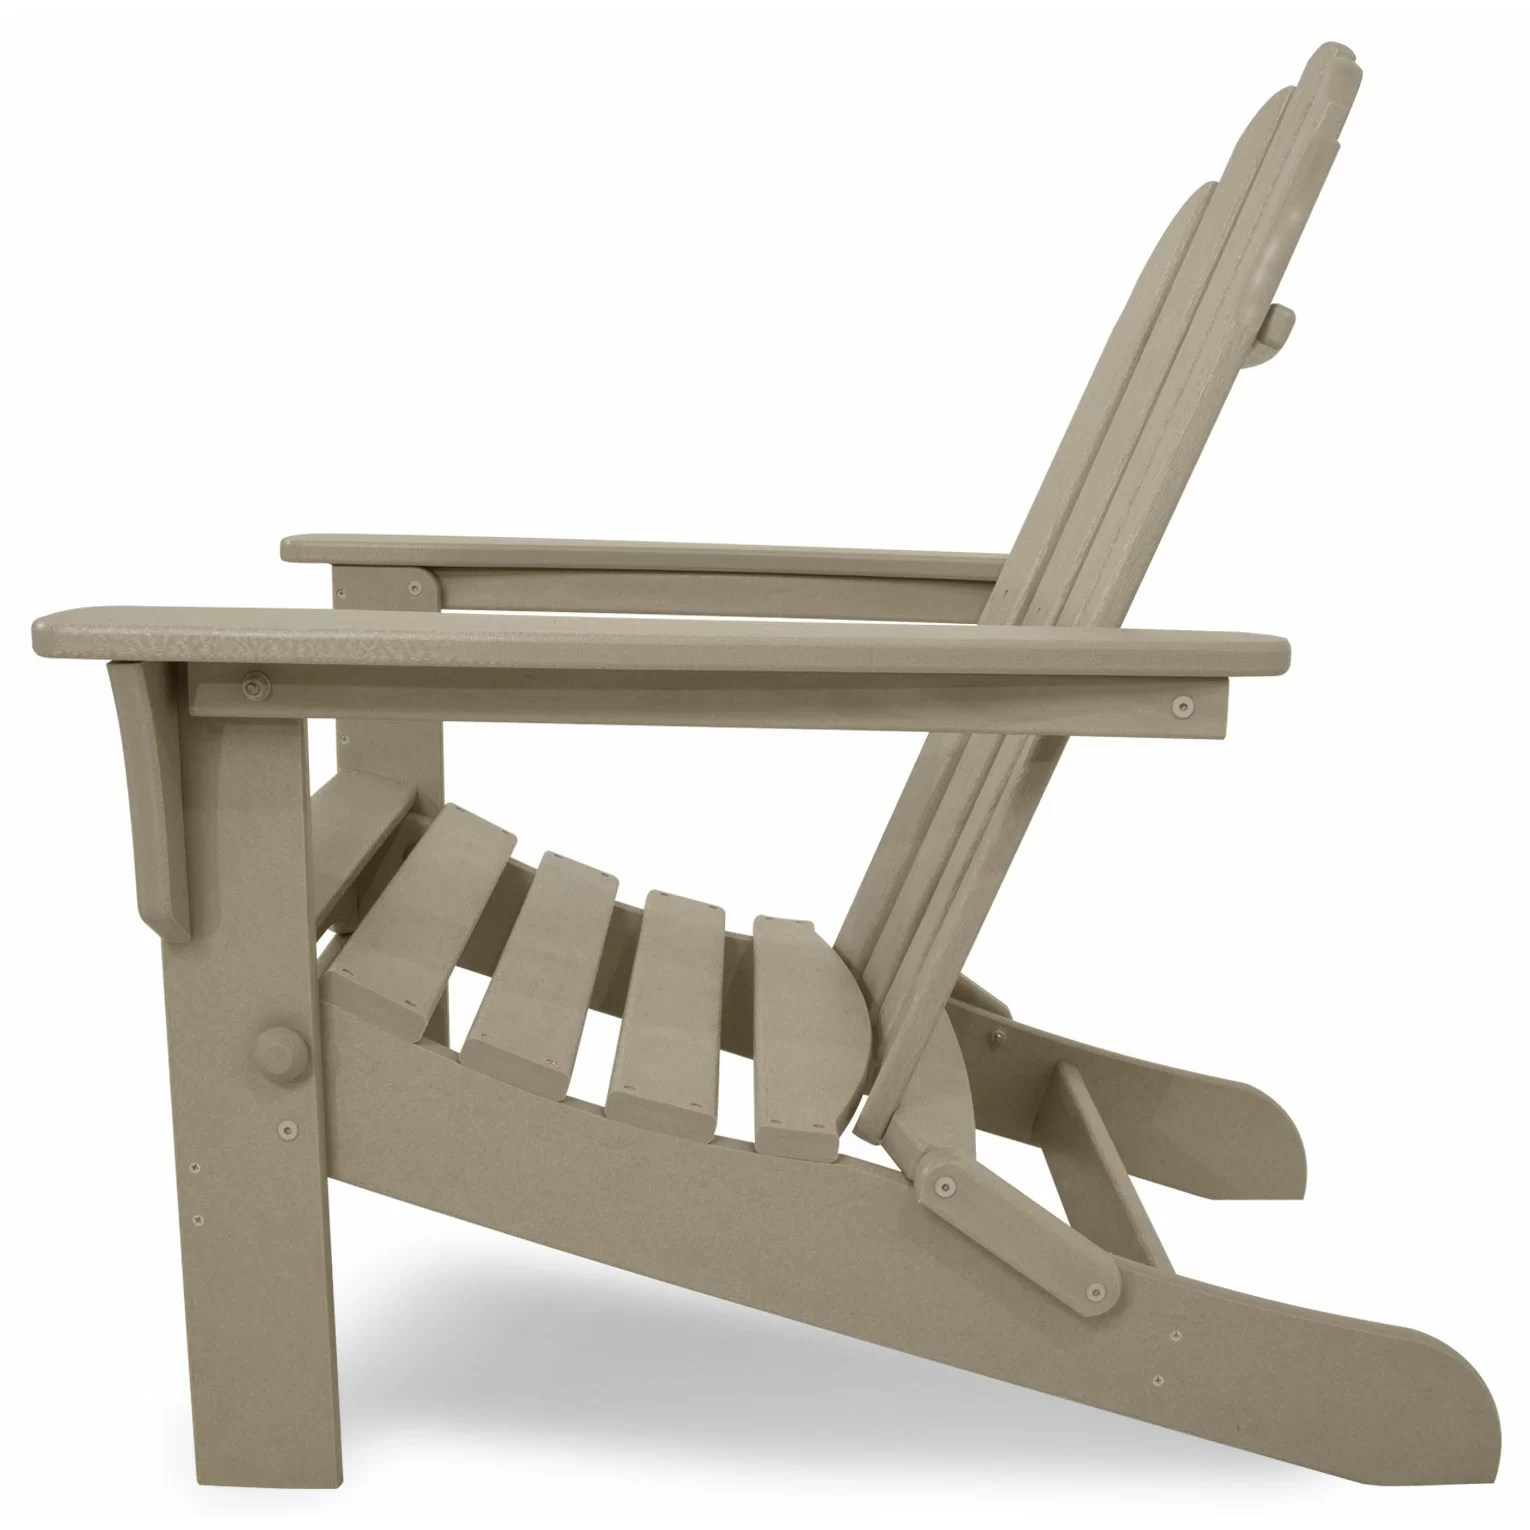 Living Accents Folding Adirondack Chair Trex Trex Outdoor Cape Cod Adirondack Chair And Footstool